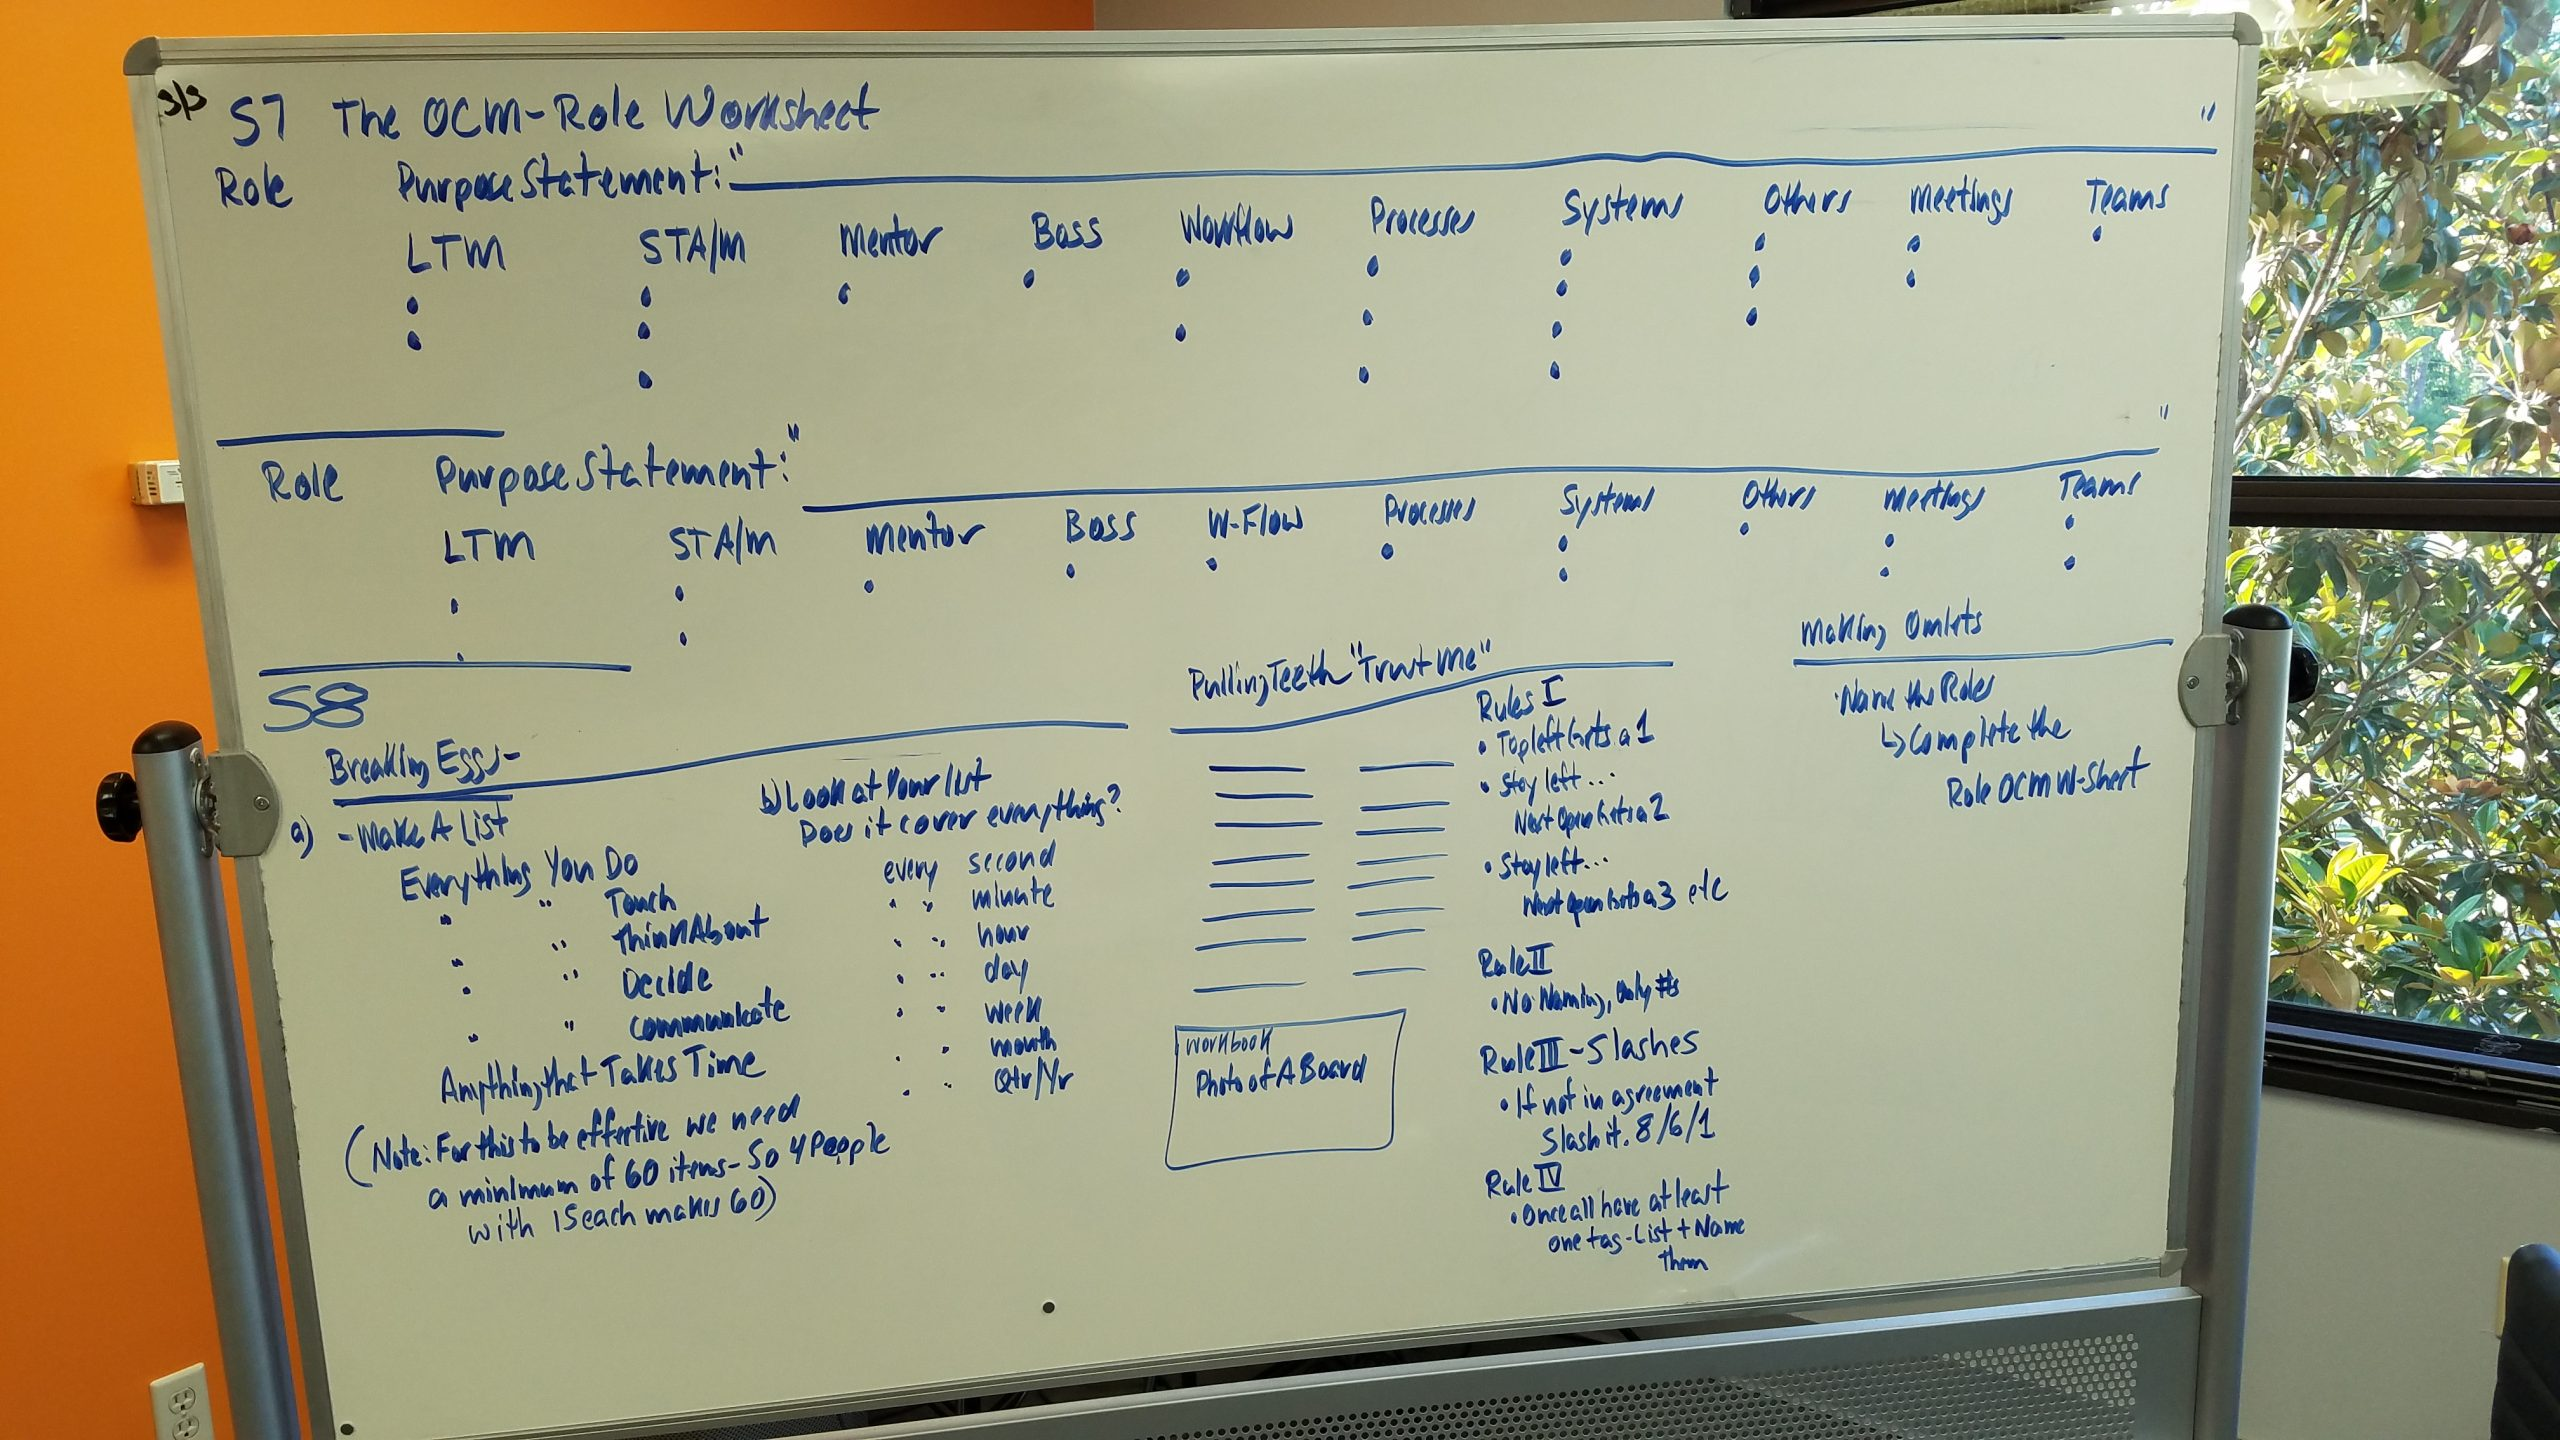 Whiteboard mapping out org graph position facilitations